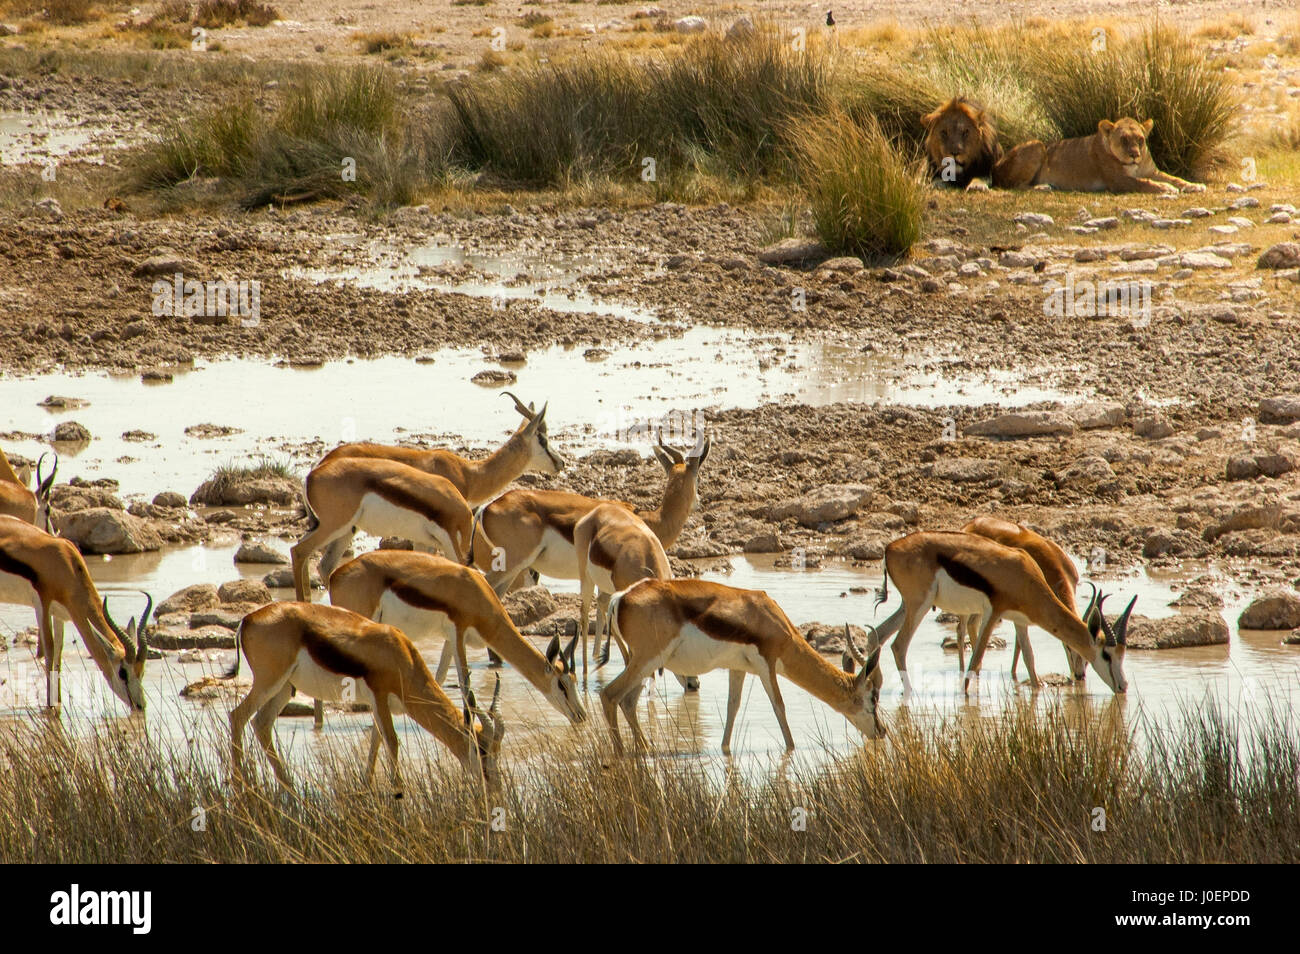 Springbok herd drinking at Salvadora waterhole, with a couple of lions lying near a bush in the background, Etosha National Park, Namibia Stock Photo